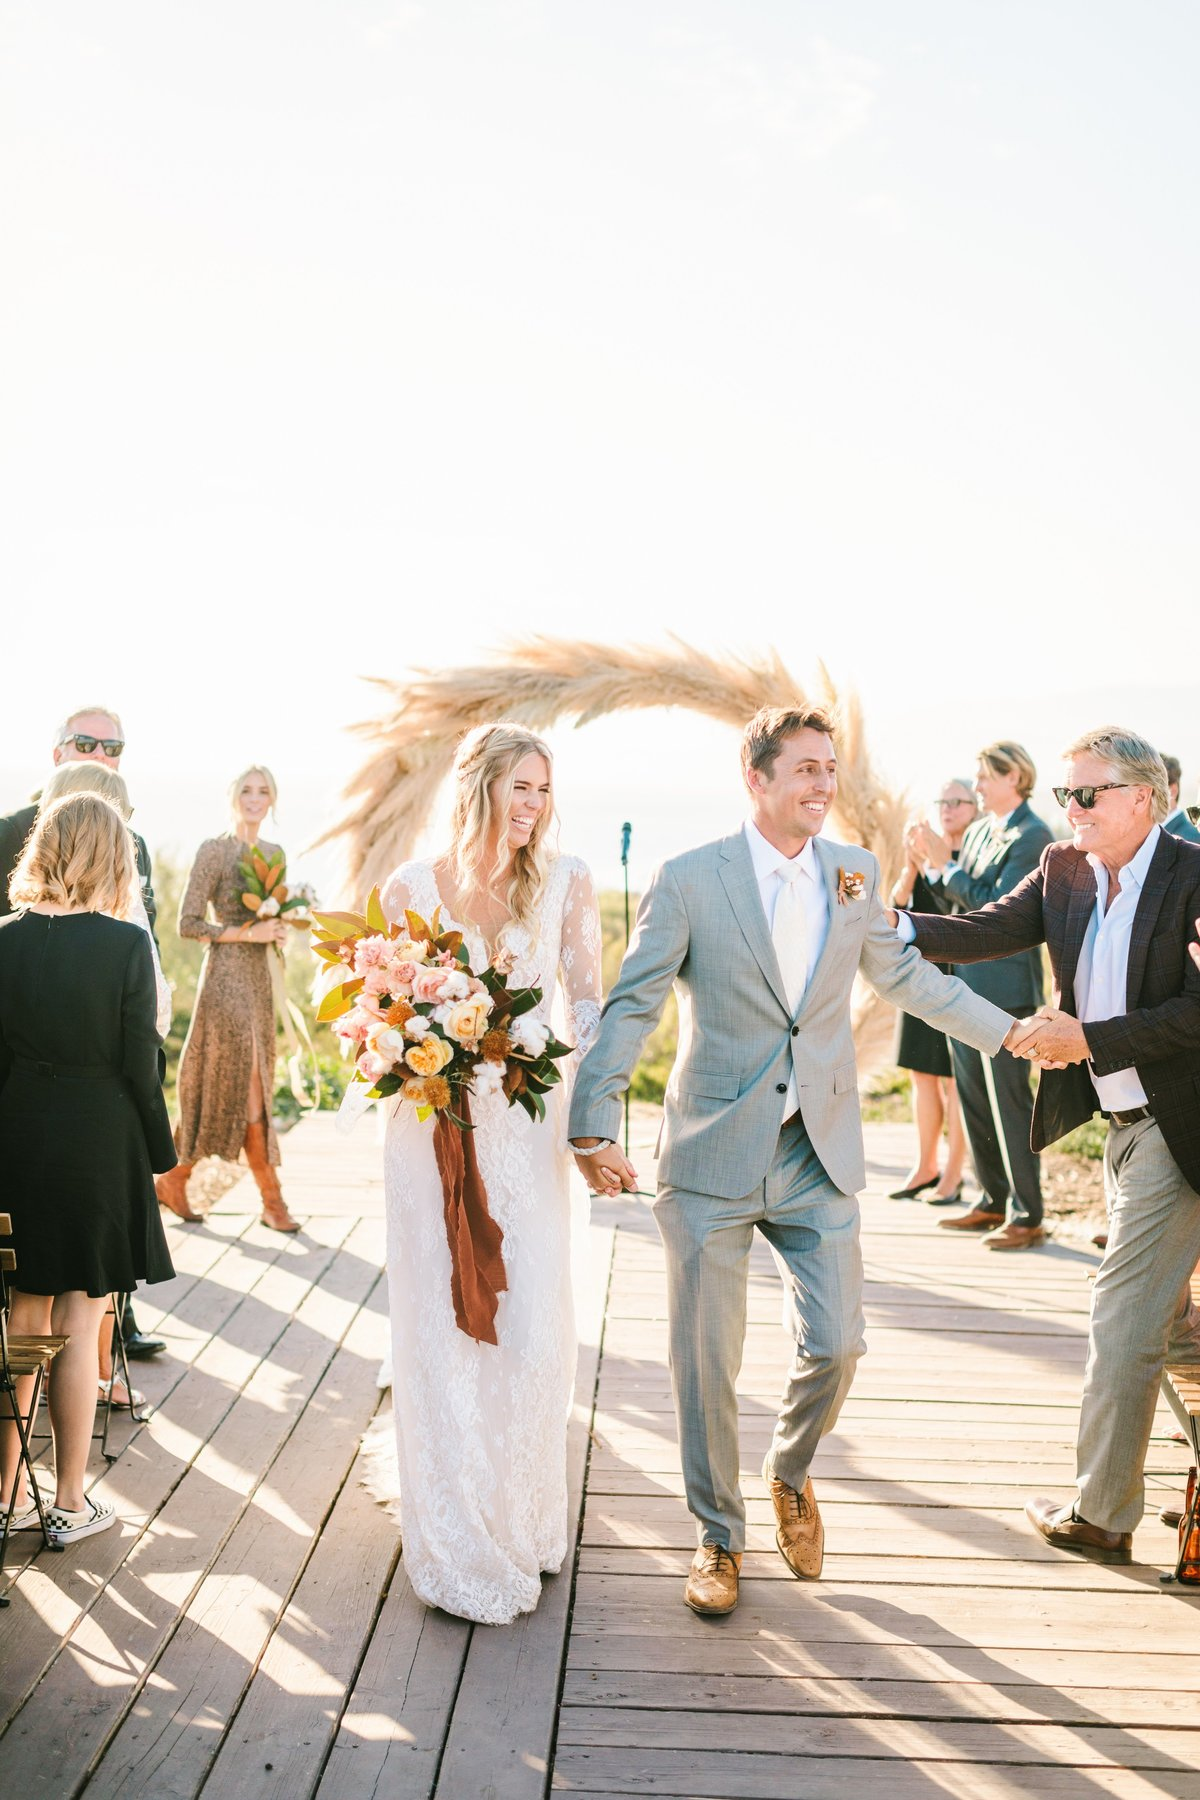 Best California Wedding Photographer-Jodee Debes Photography-65